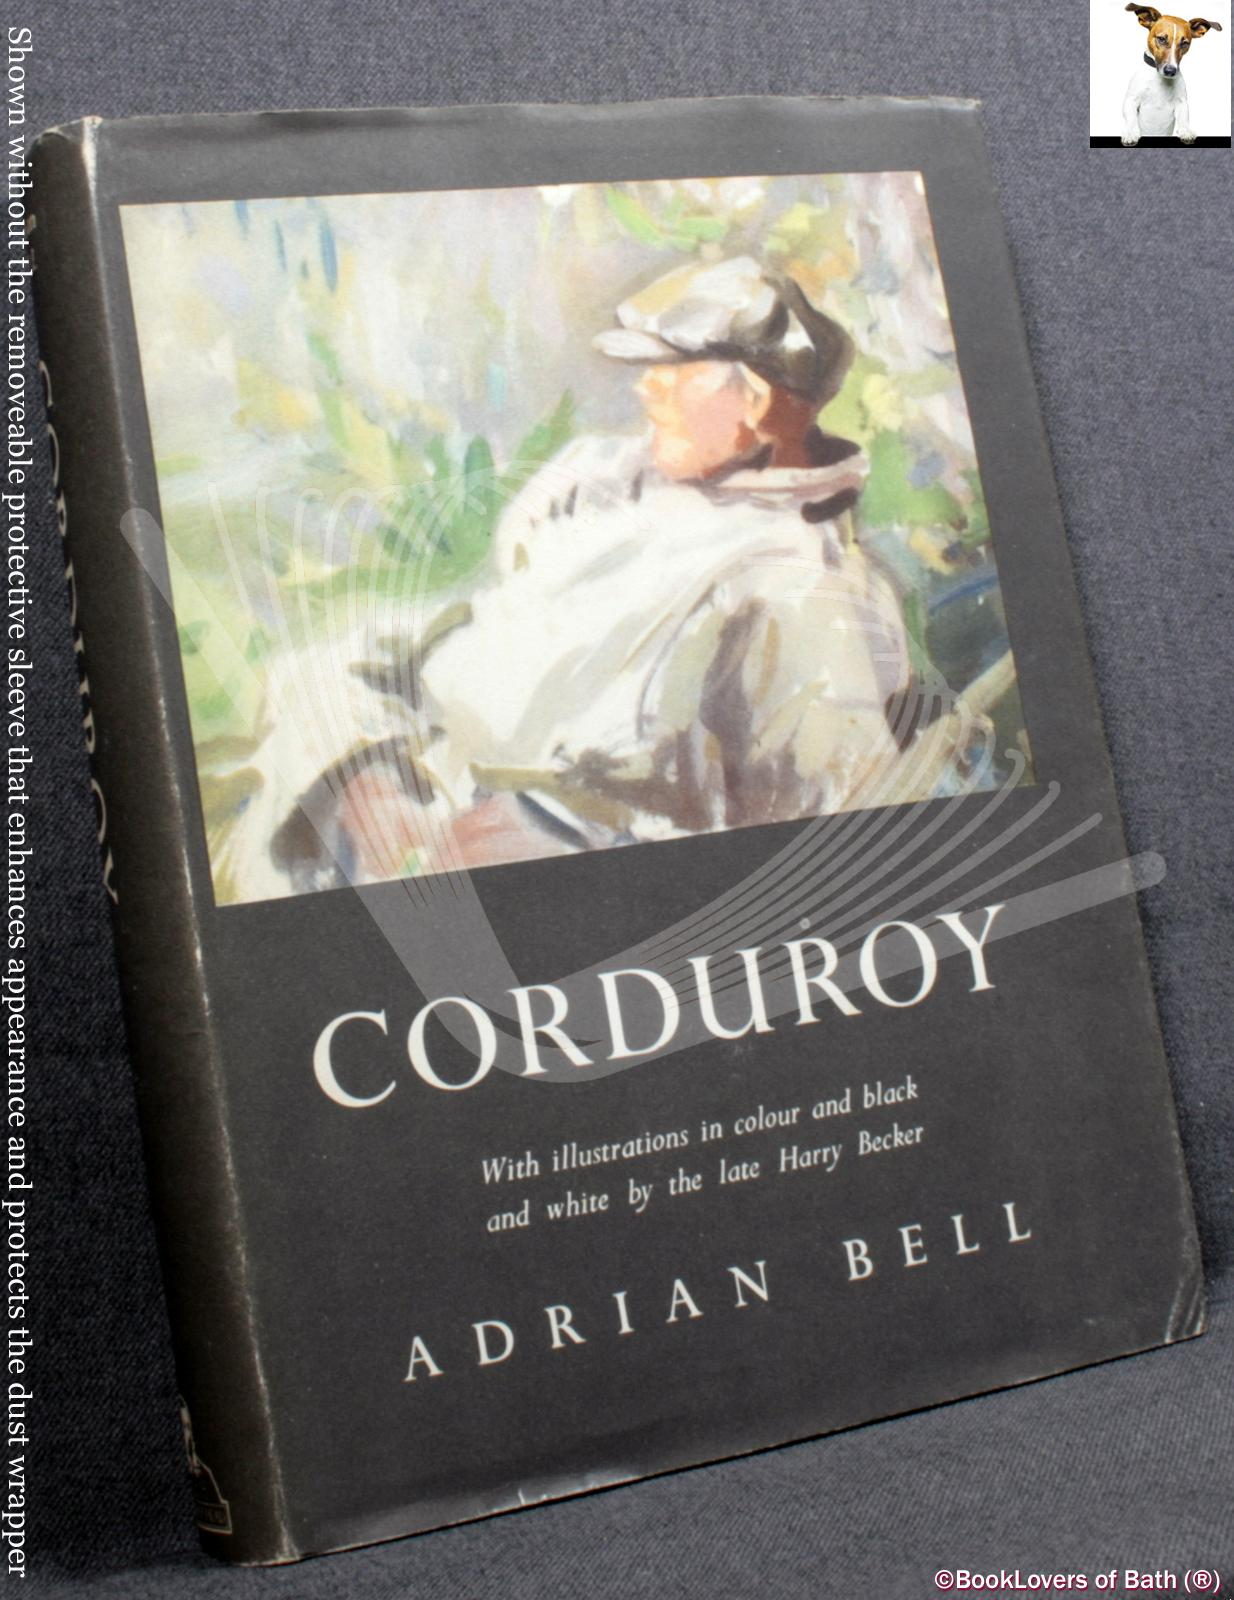 Corduroy, Silver Ley & the Cherry Tree - Adrian Bell